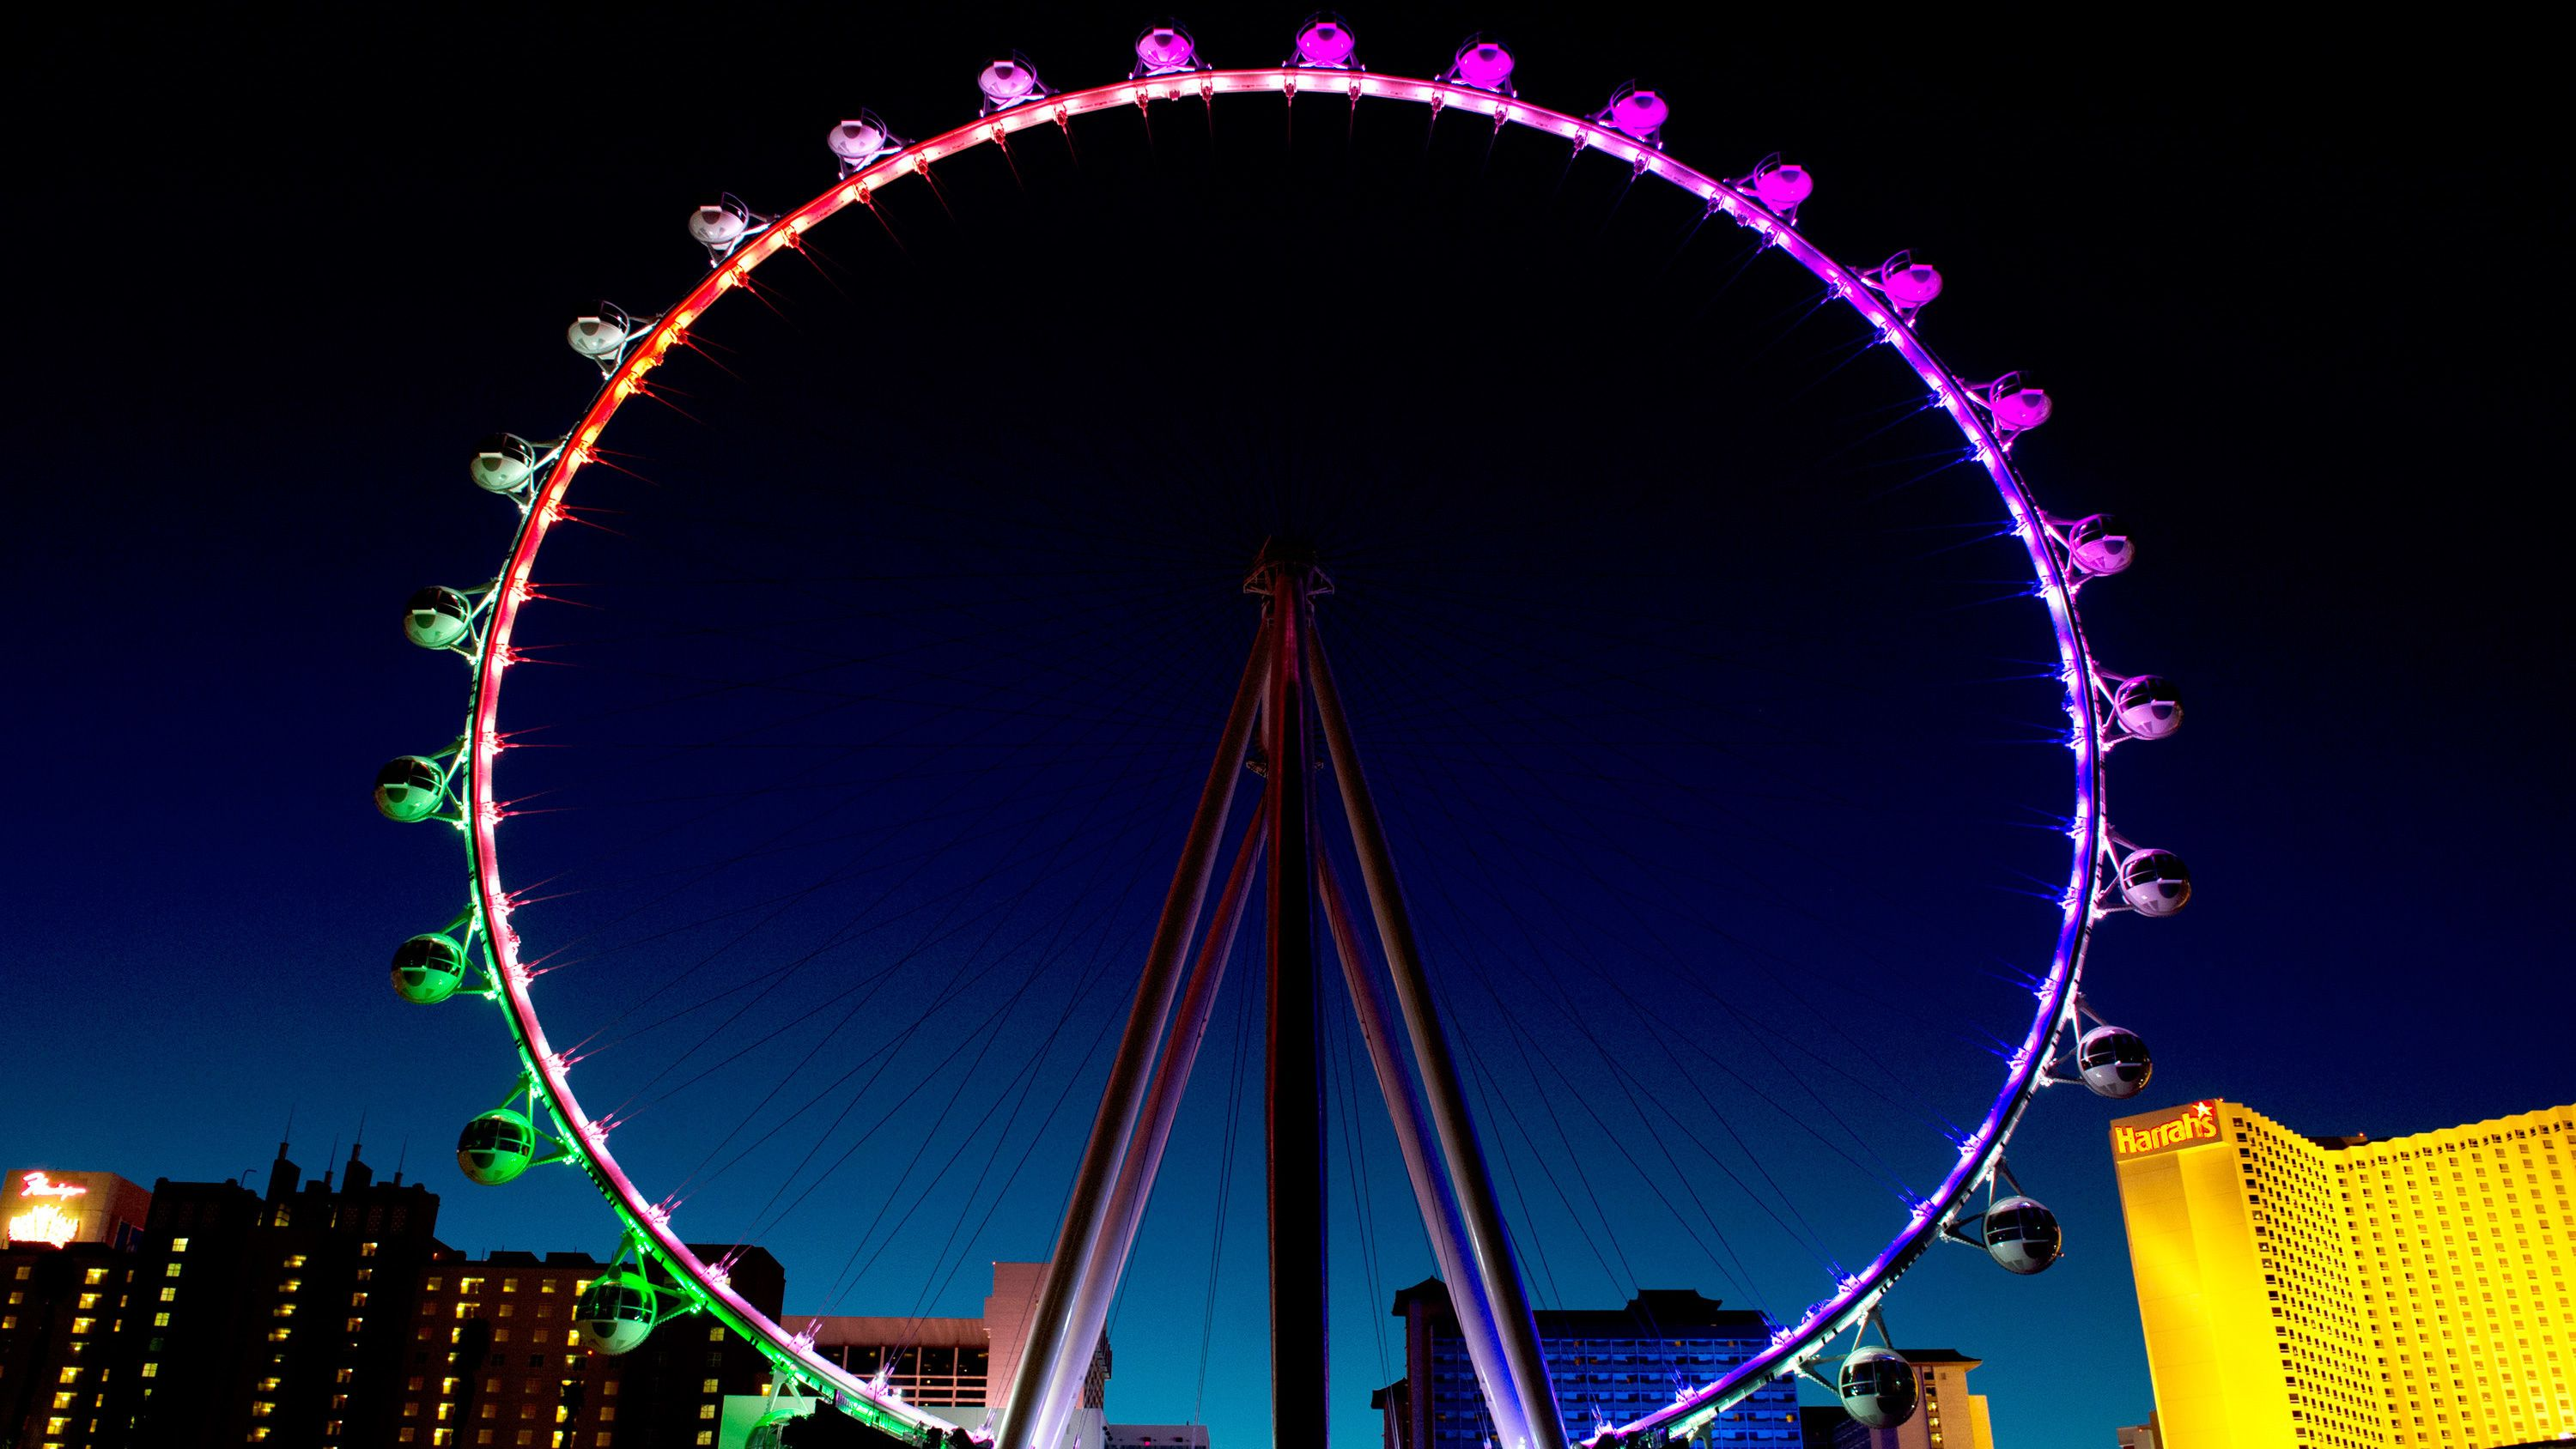 Nighttime view of The High Roller Observation Wheel in Las Vegas